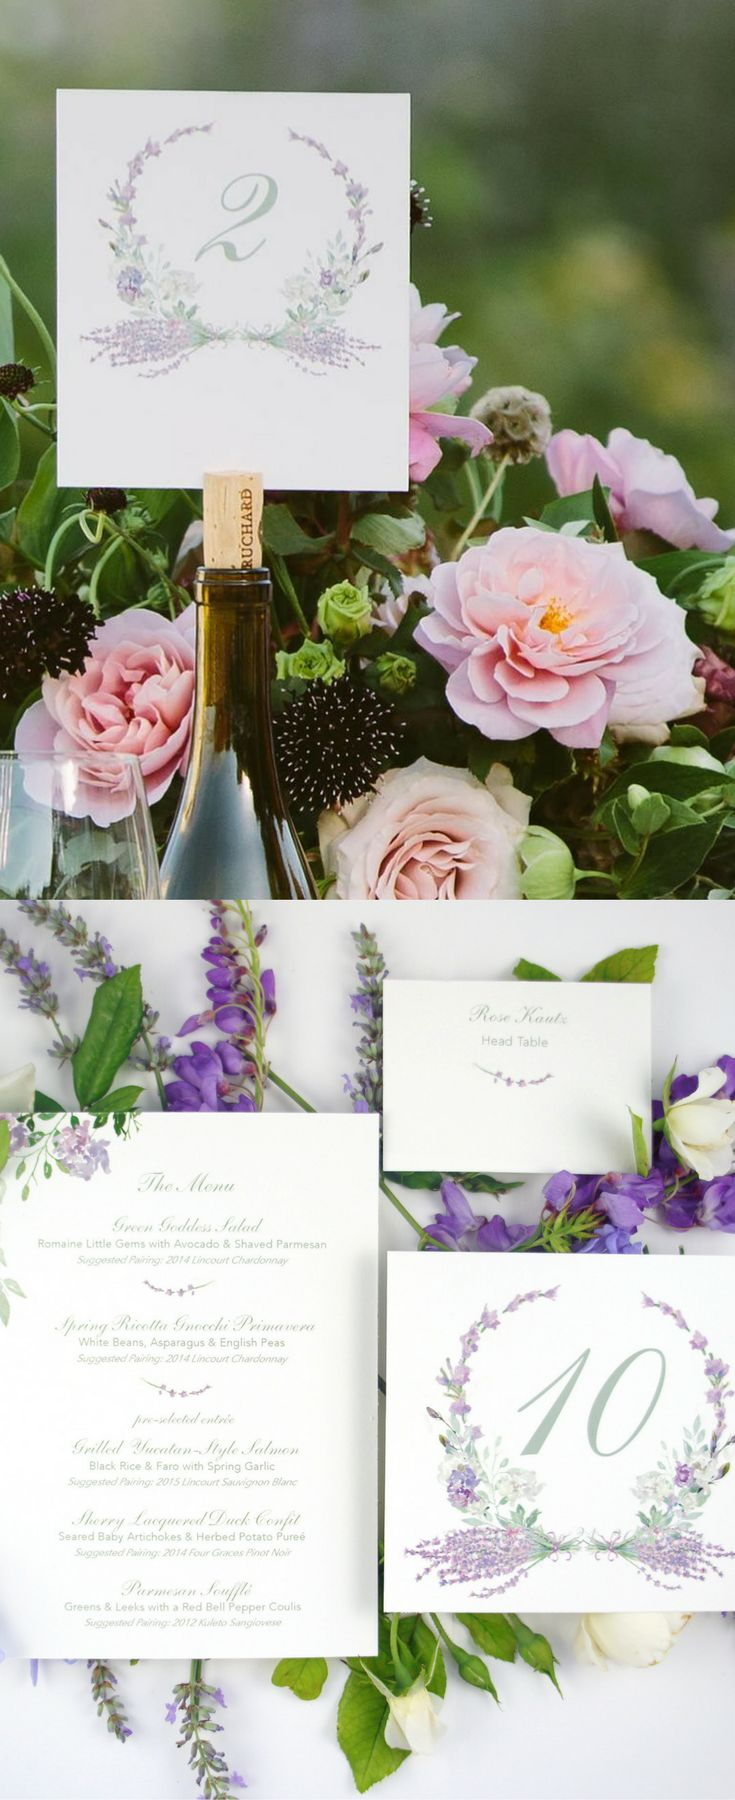 tulip wedding invitation templates%0A Hand Painted Lavender Suite for a Wine Country Wedding in Santa Ynez Valley